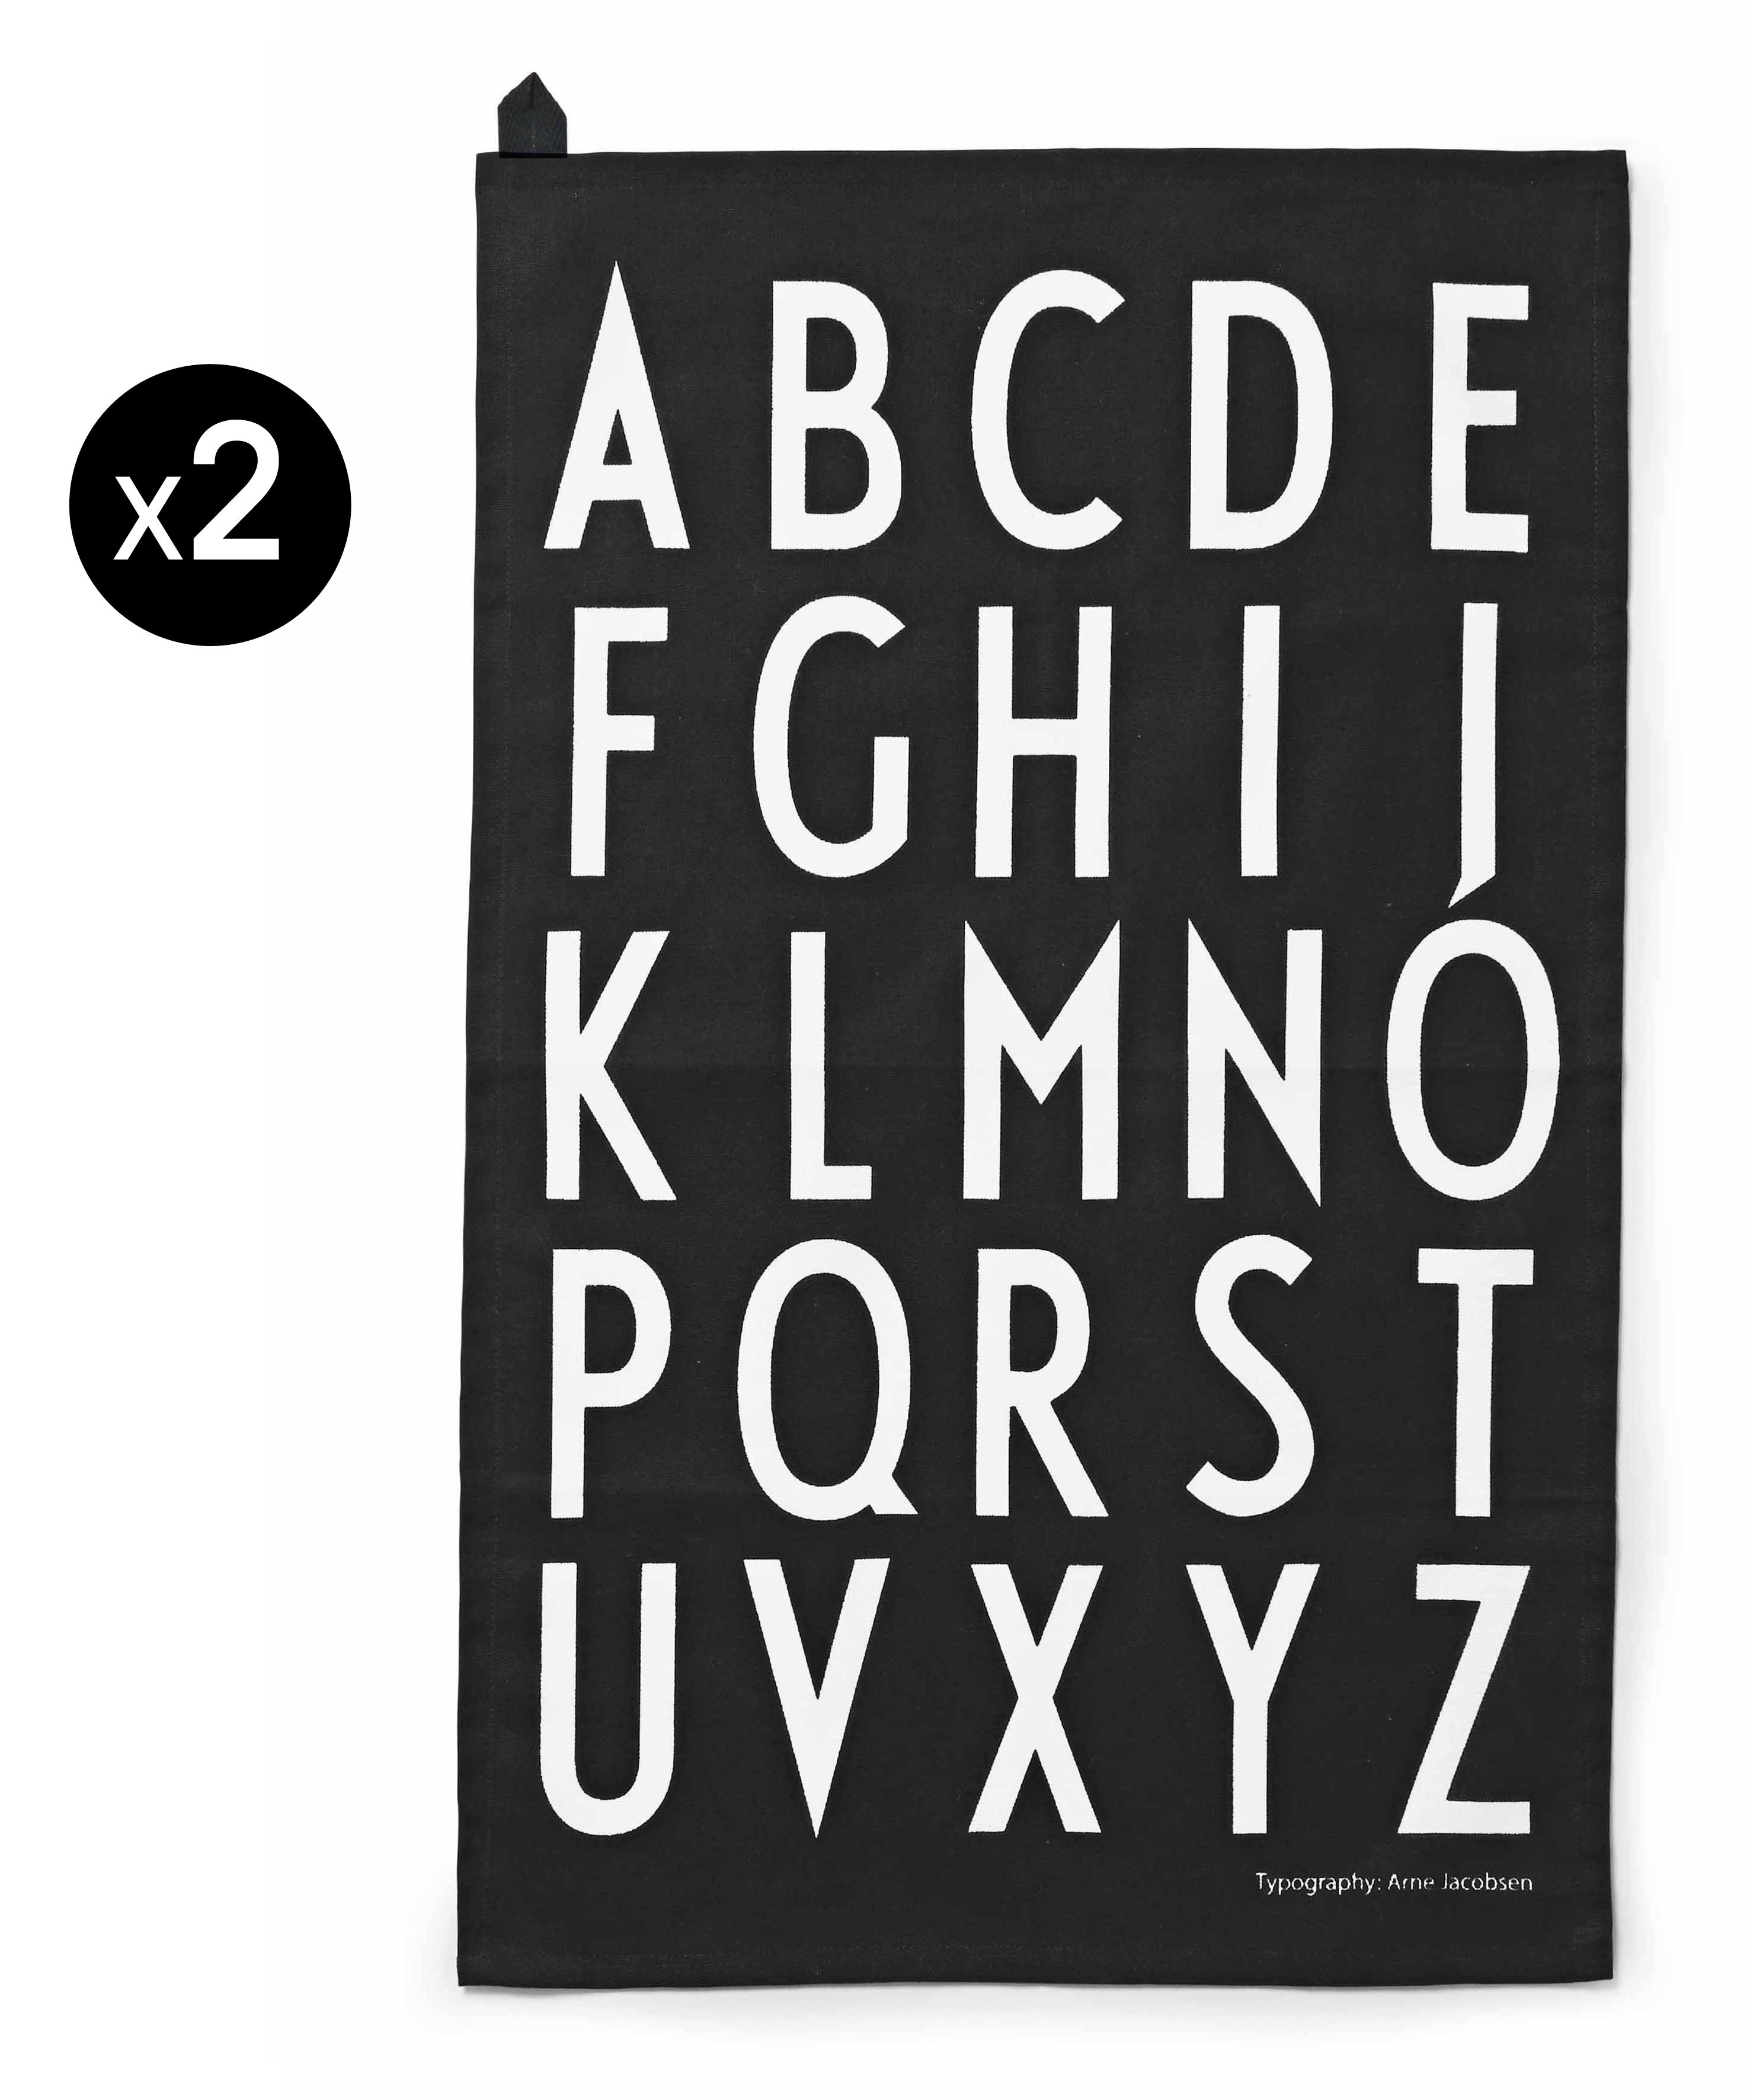 torchon arne jacobsen lot de 2 noir alphabet blanc design letters. Black Bedroom Furniture Sets. Home Design Ideas